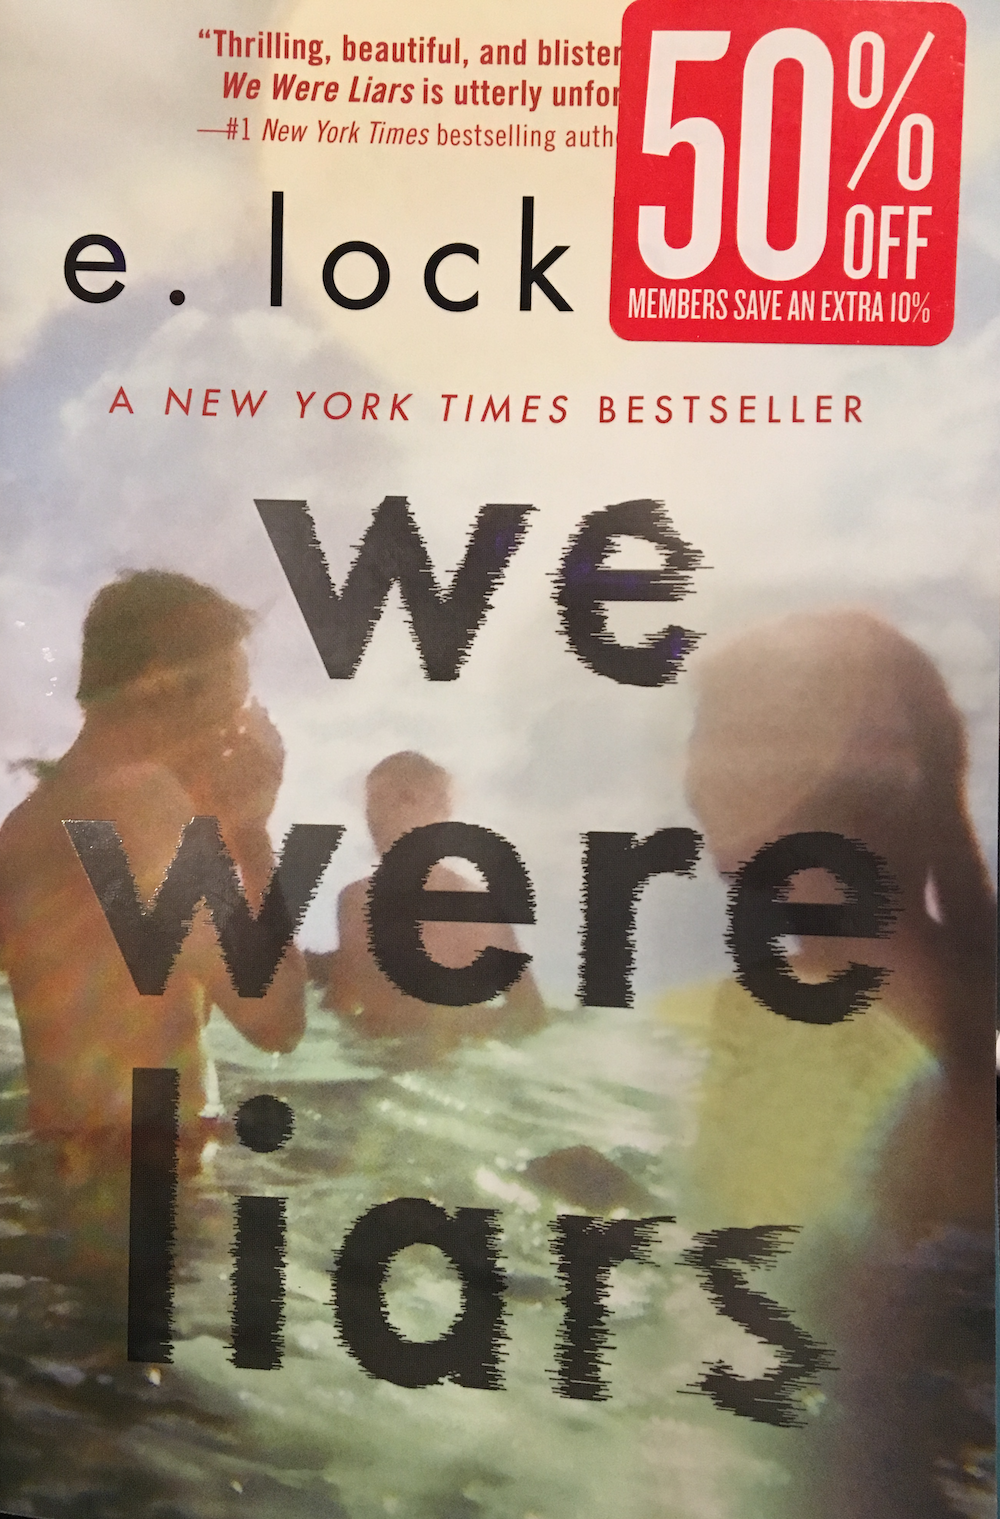 We Were Liars book cover